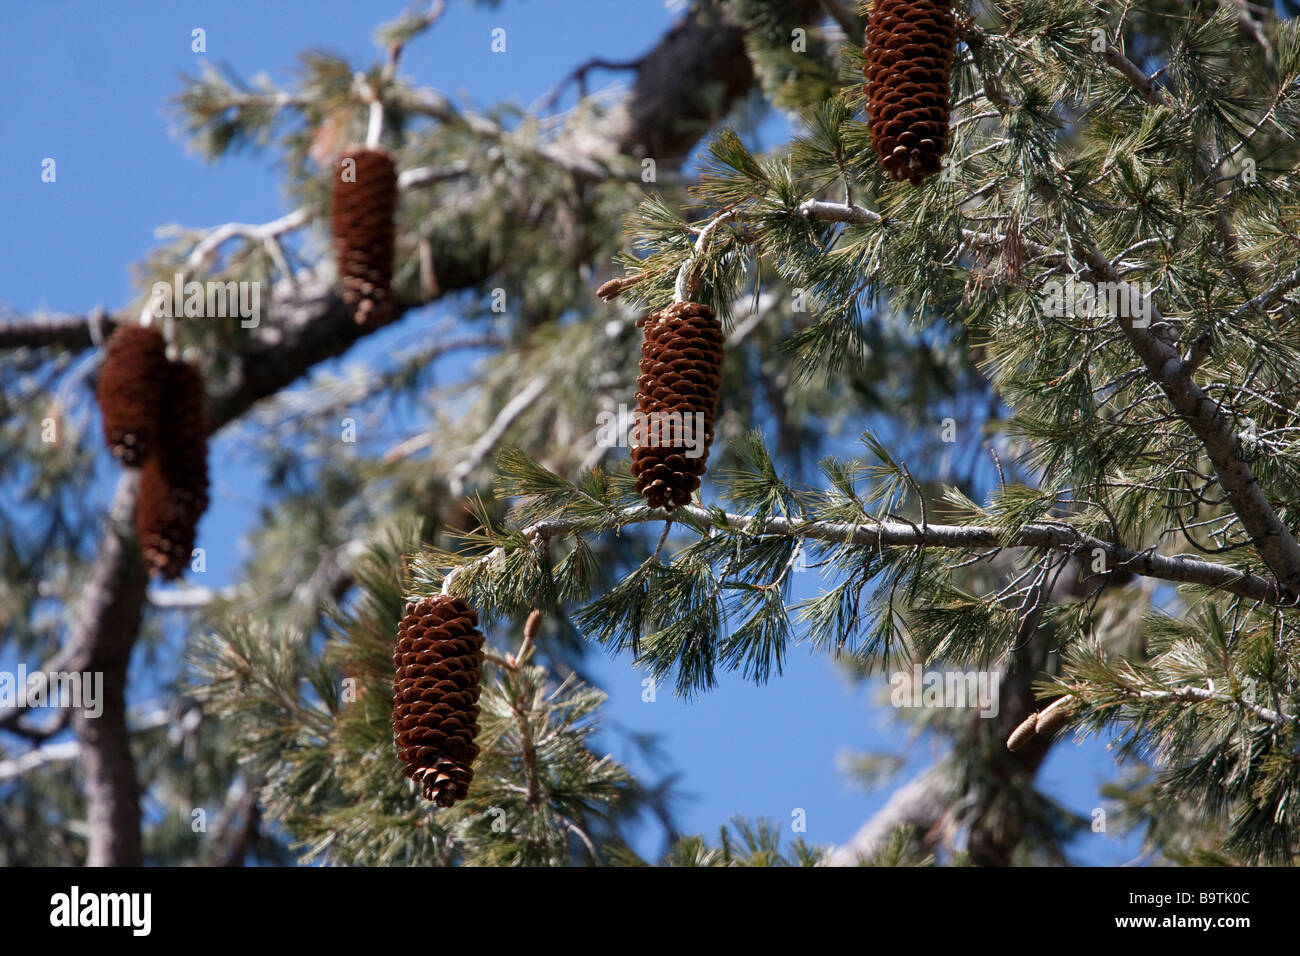 Sugar pine cone in Yosemite National Park, California, USA - Stock Image